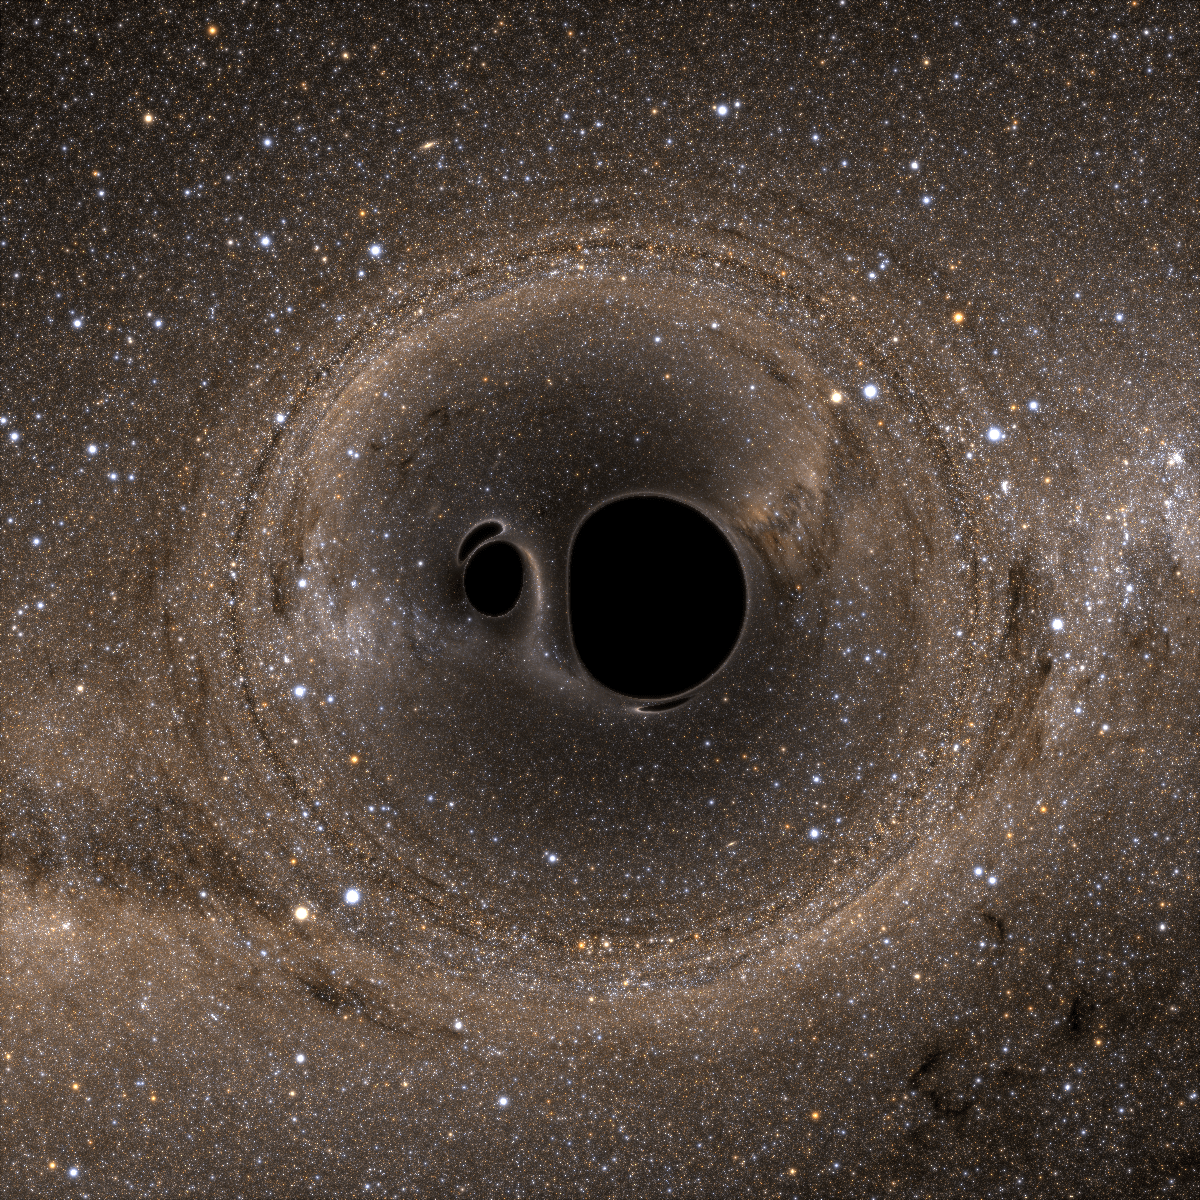 Can You See A Black Hole 93